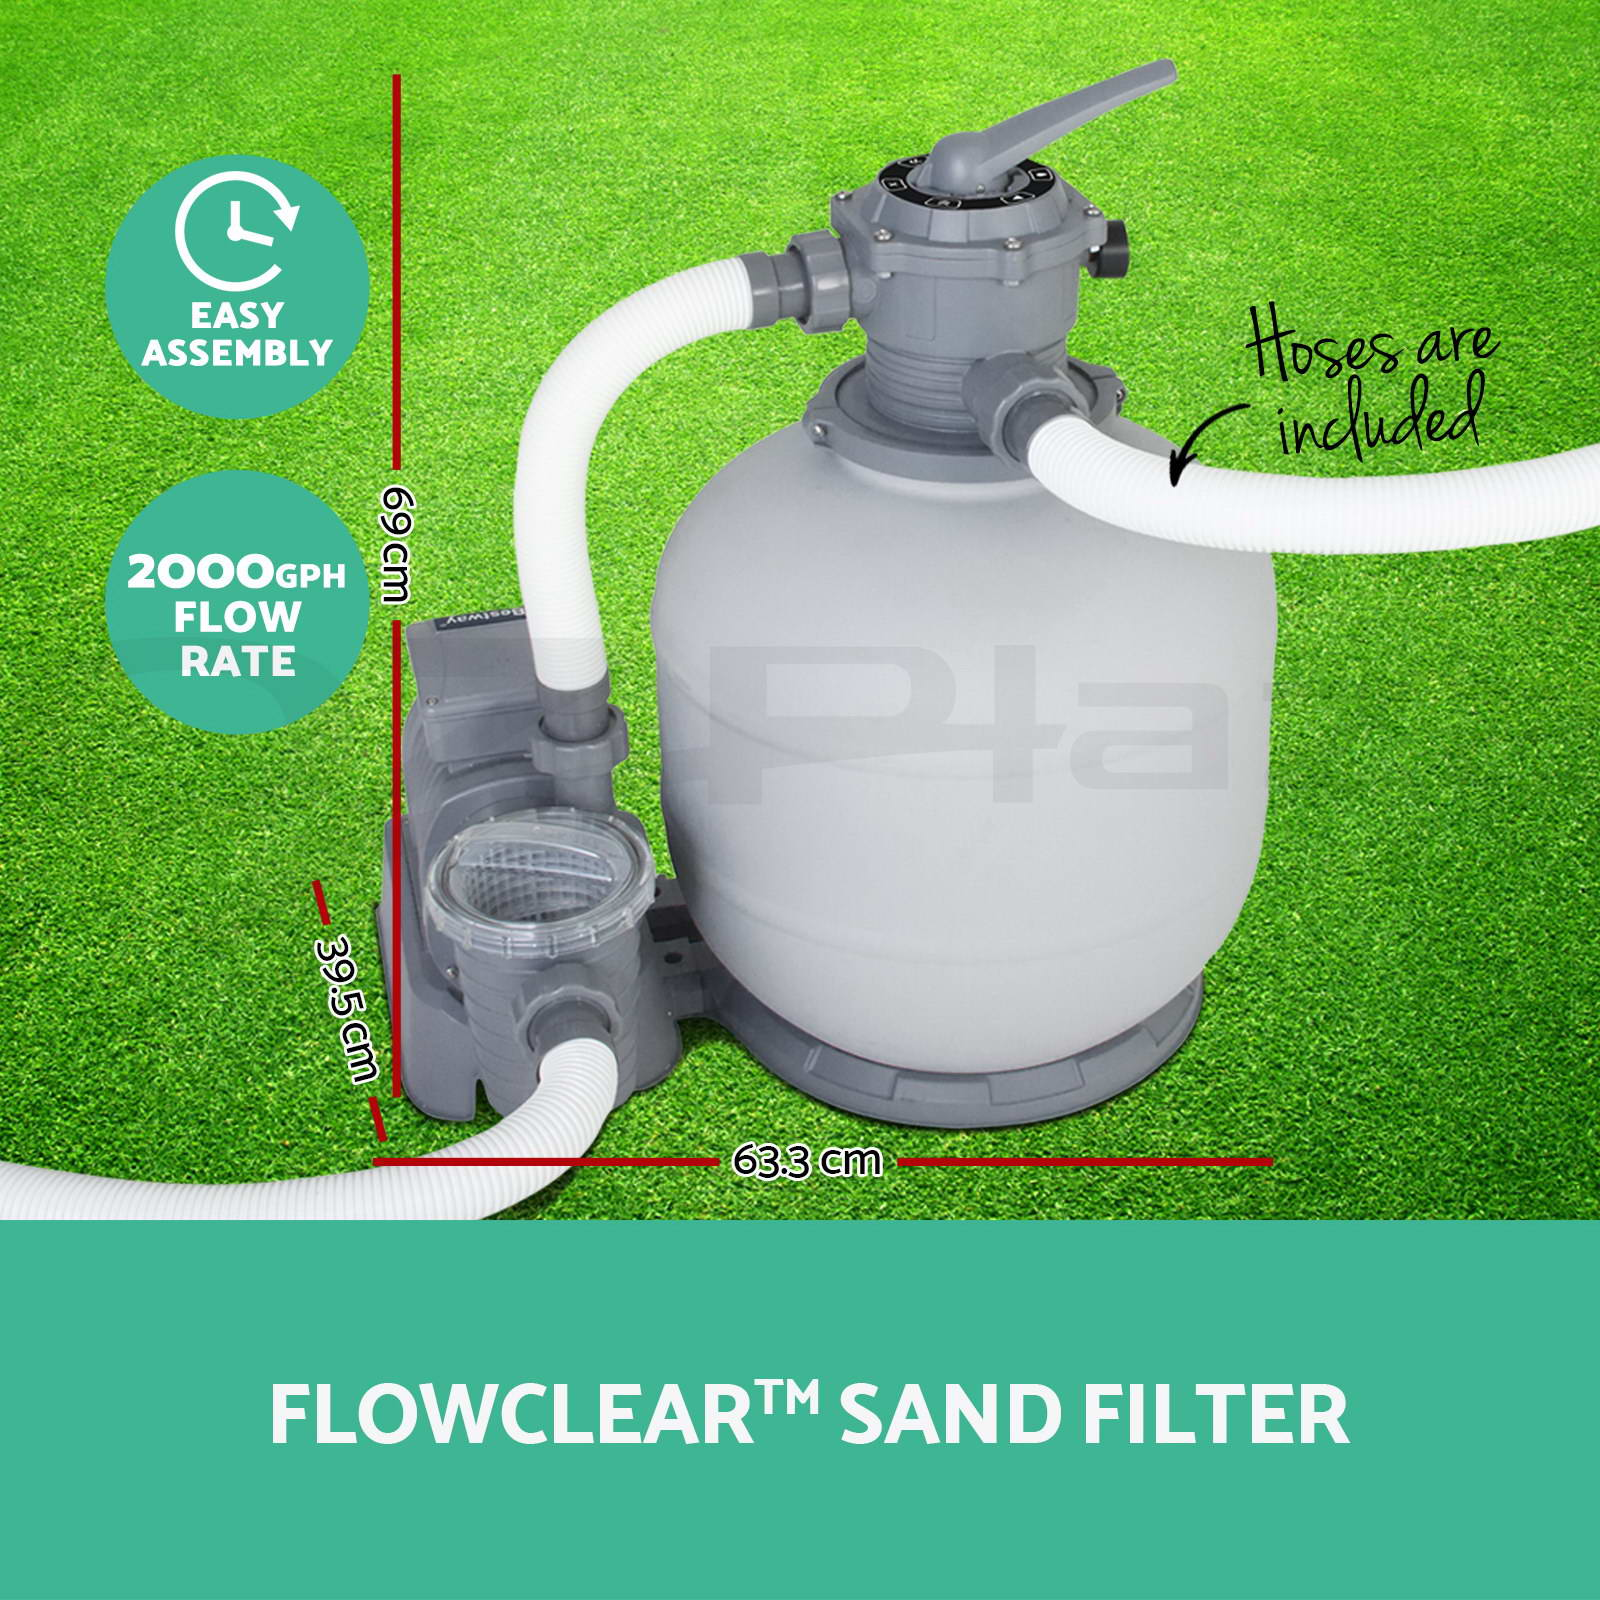 Jacuzzi Pool Vacuum Parts Bestway Flowclear Filter Pump Sand Filter Pool Vacuum